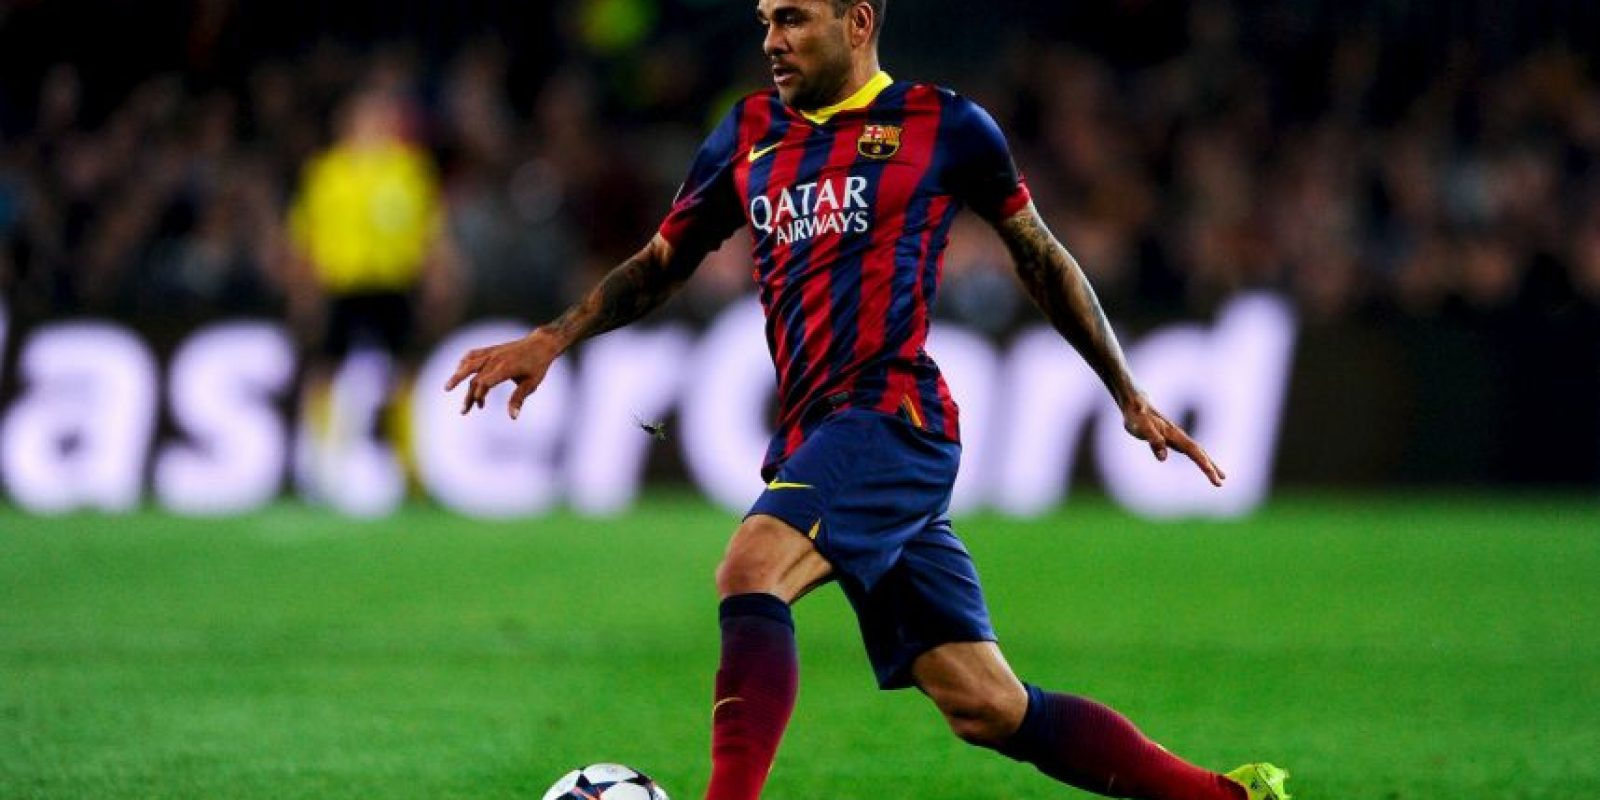 6. Dani Alves Foto: Getty Images